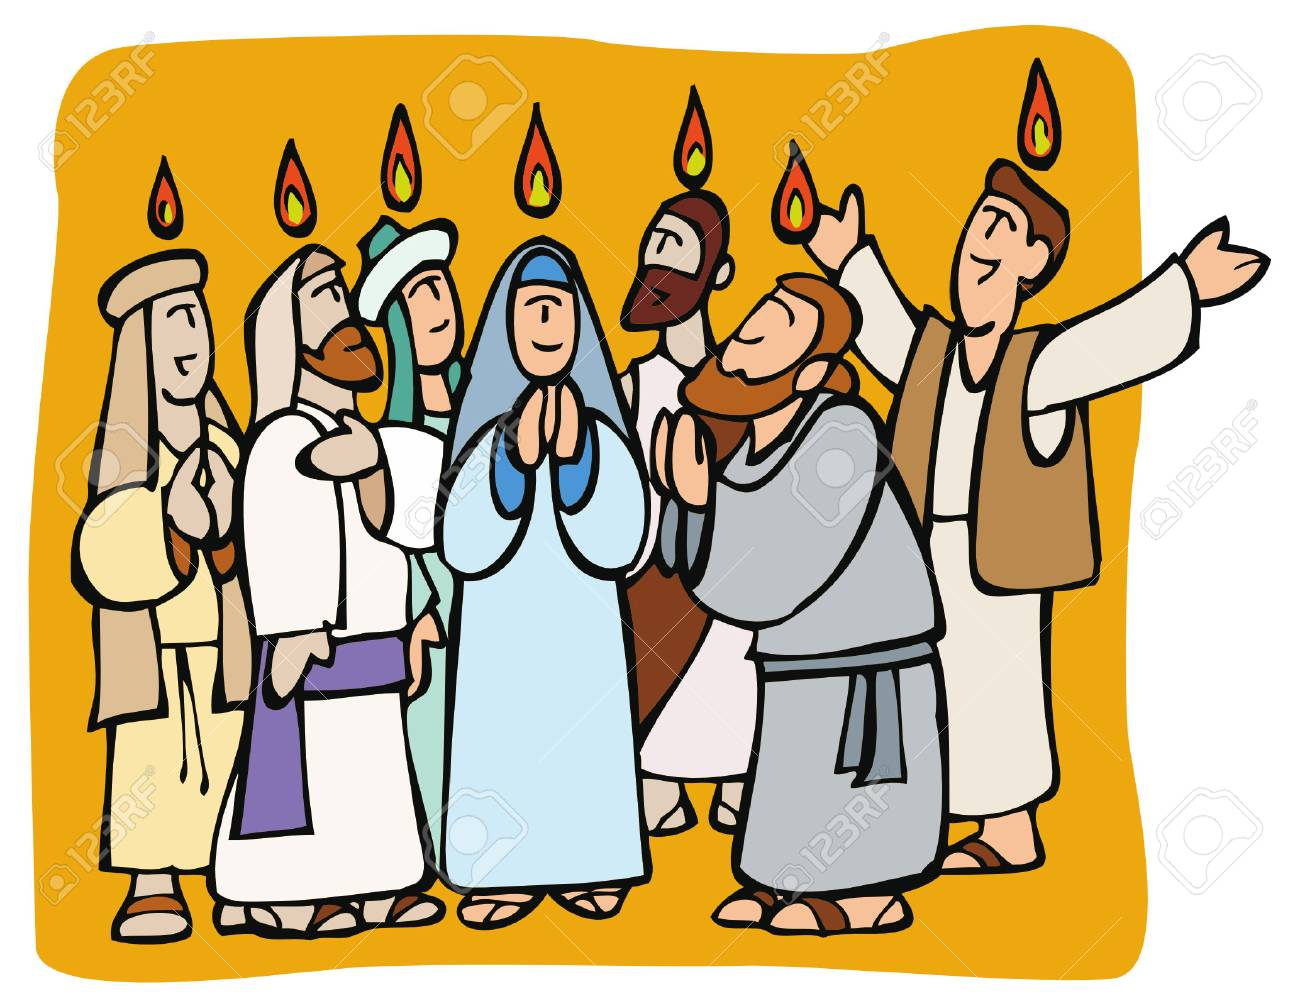 Pentecost. Apostles and Mary praying in tongues and fire above them while receiving the Holy Spirit - 90338300